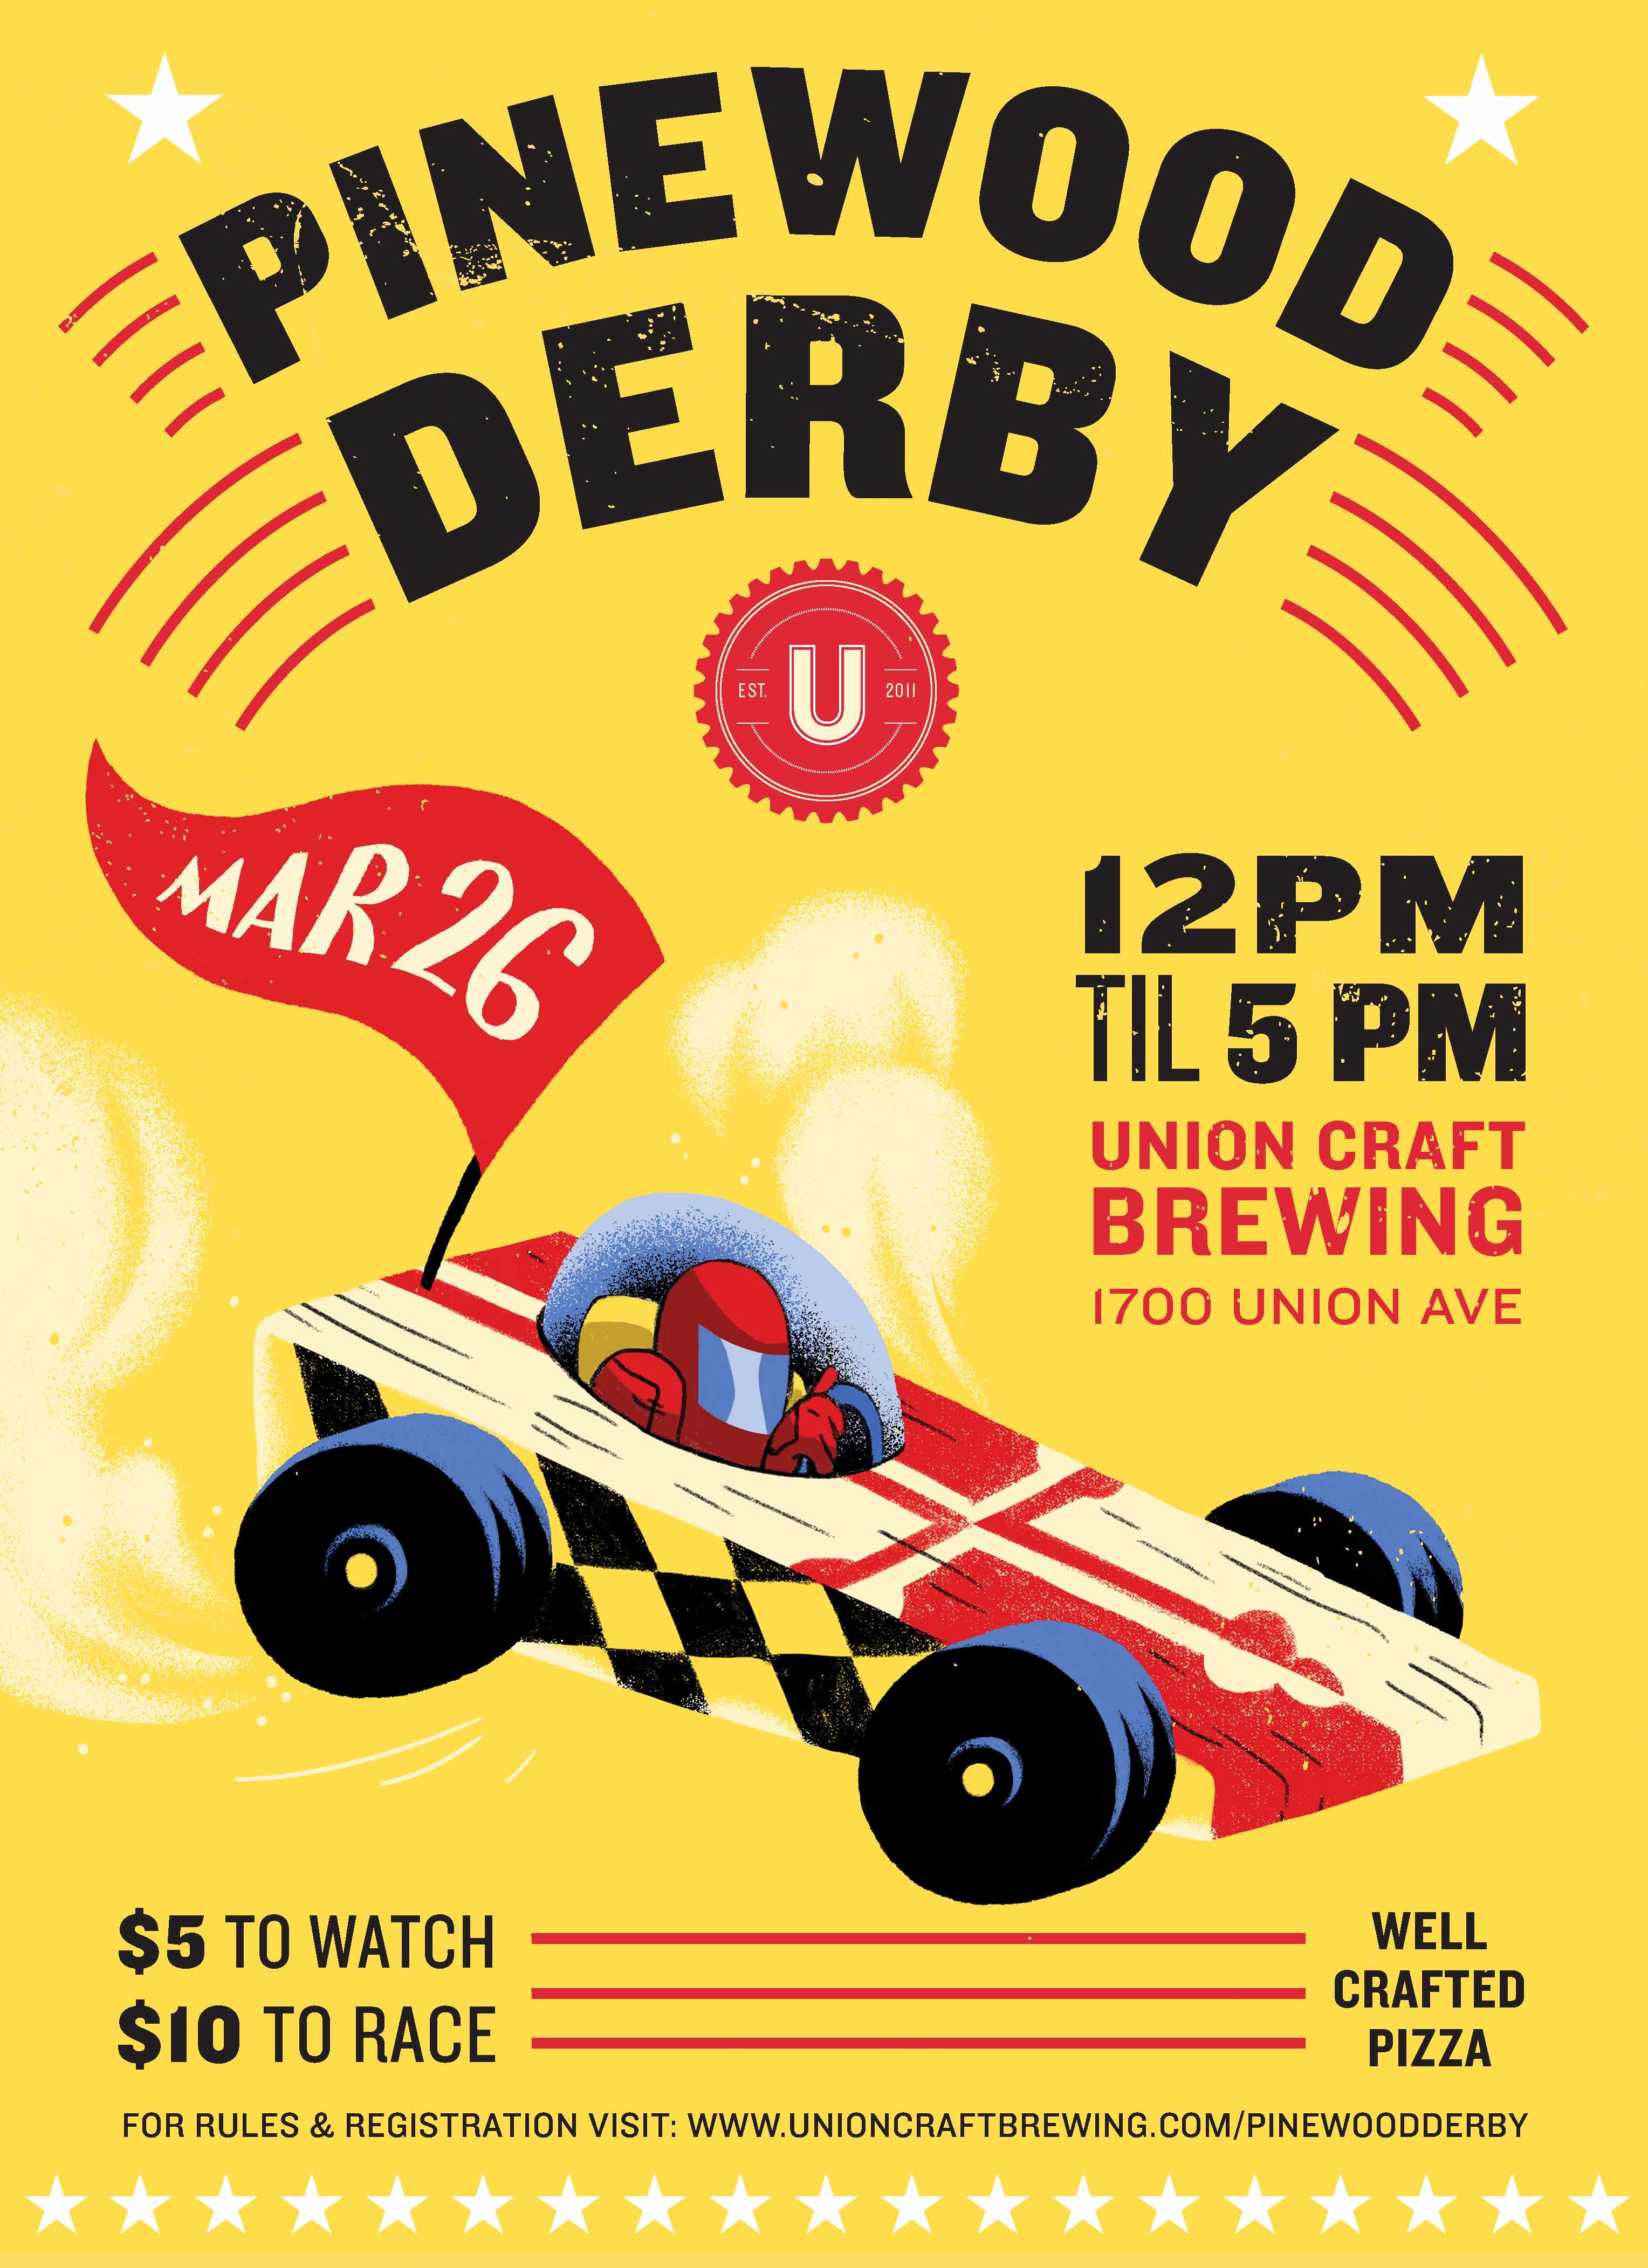 Pinewood Derby Flyer Template Inspirational Union Craft Brewing 2017 Union Pinewood Derby Union